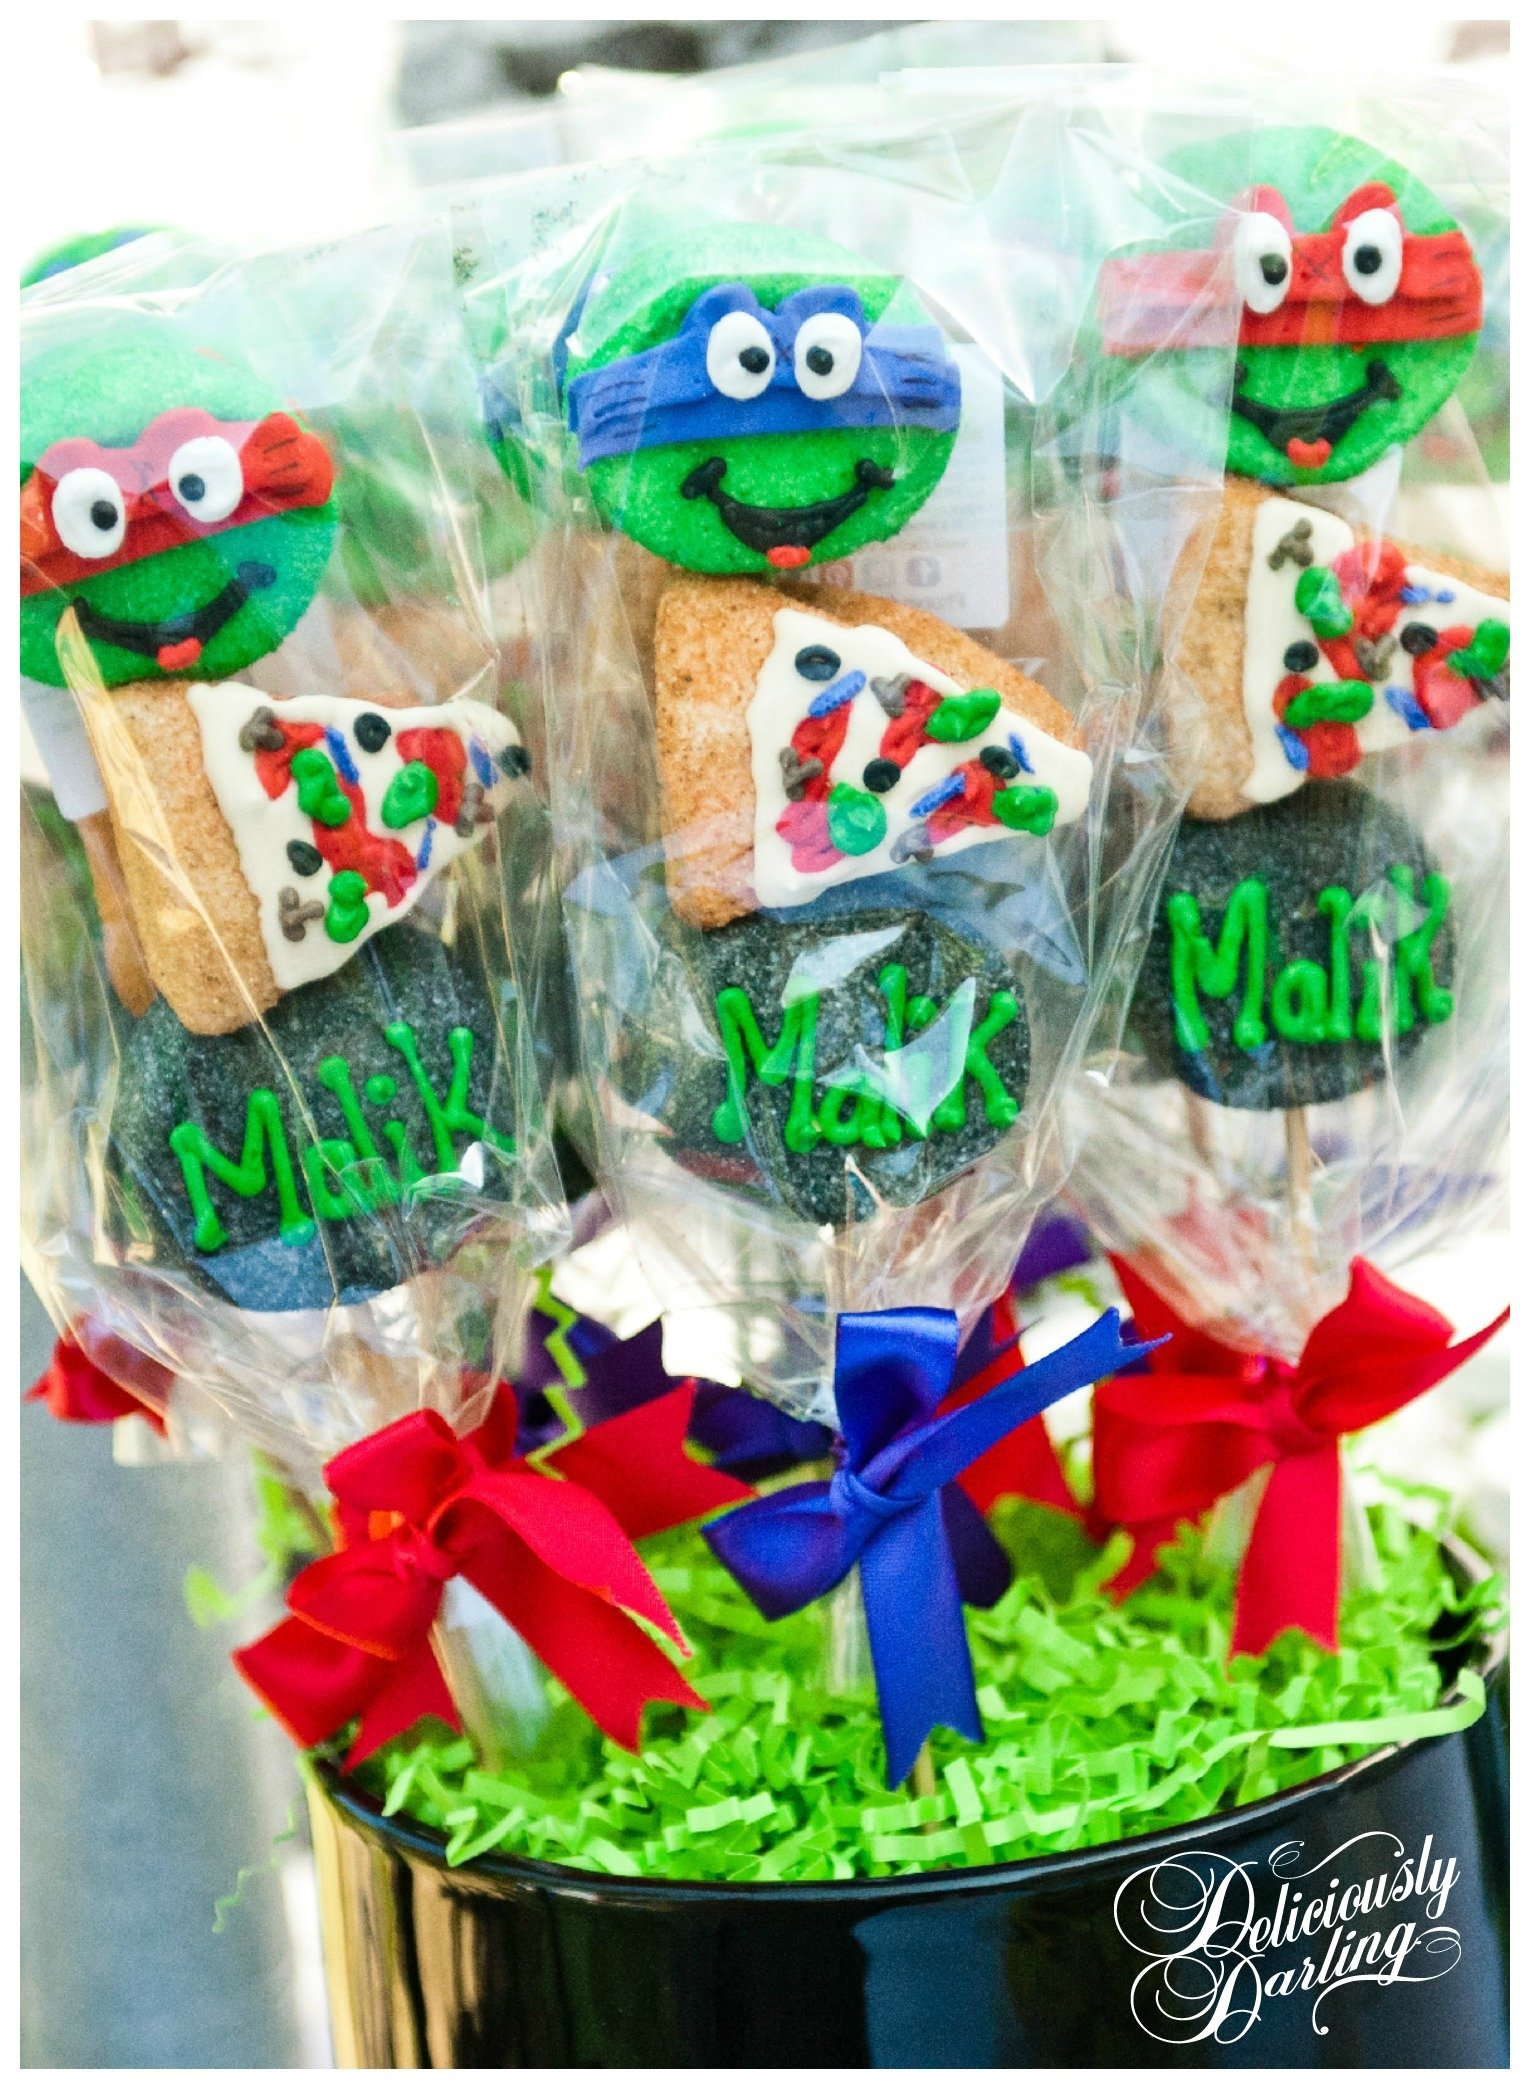 10 Awesome Teenage Mutant Ninja Turtles Party Favor Ideas teenage mutant ninja turtle inspired birthday party deliciously 4